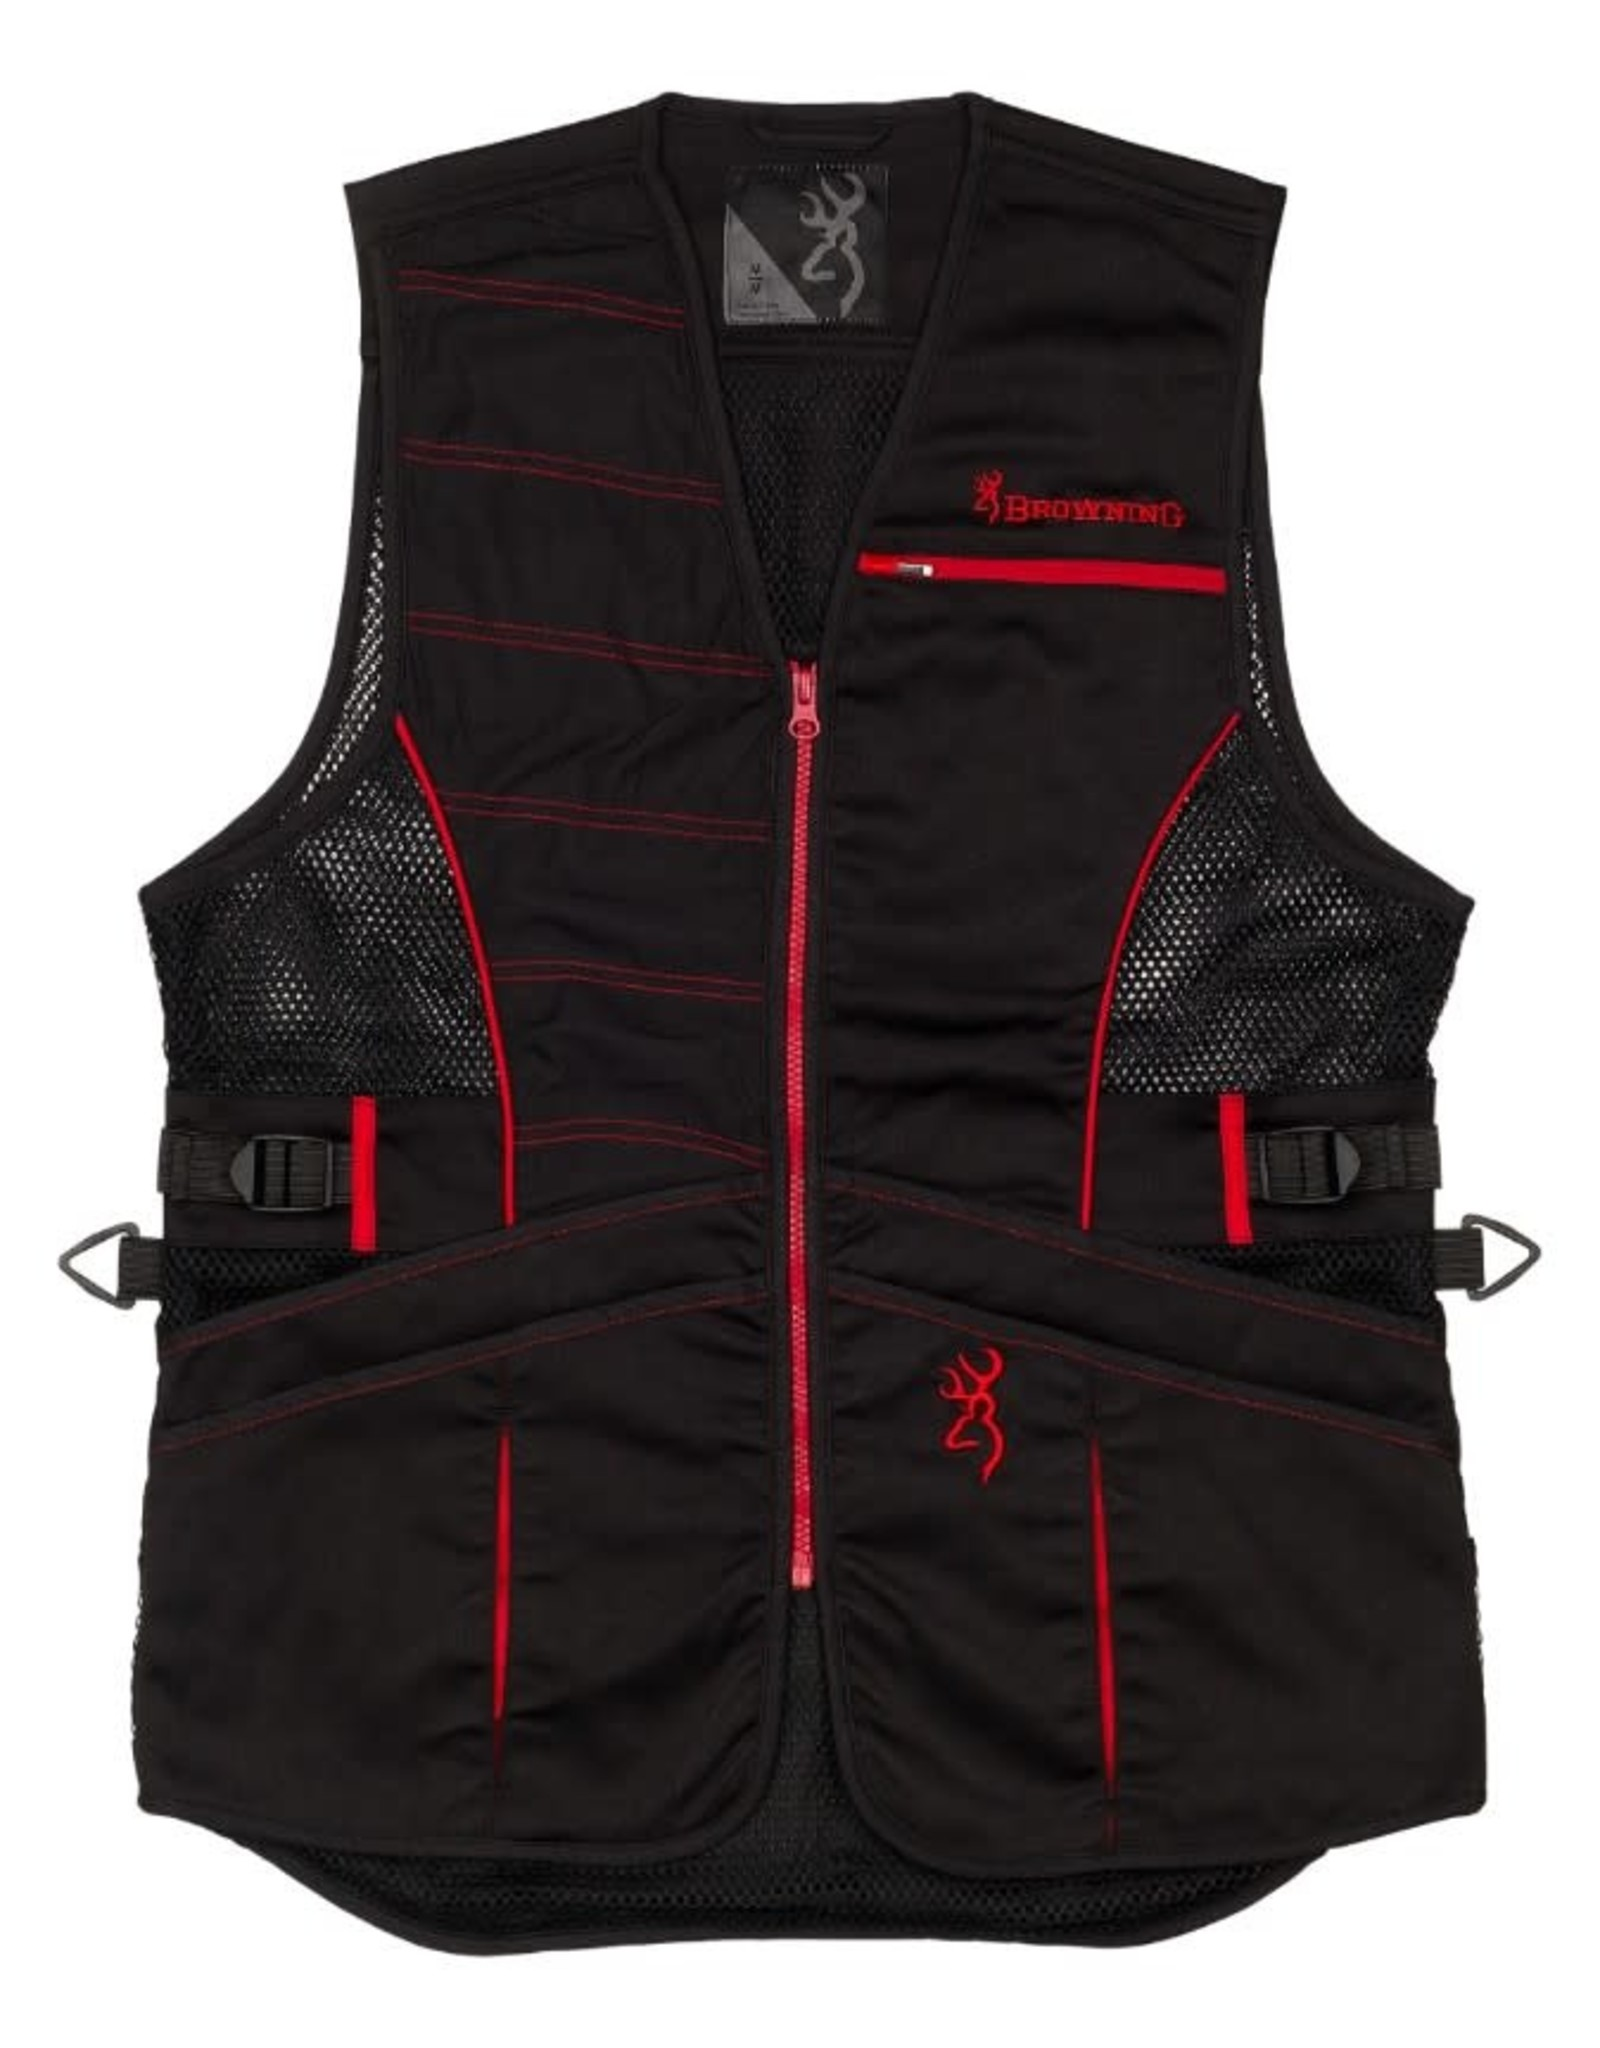 Browning Ace Shooting Vest For Her - Blk/Red - XL